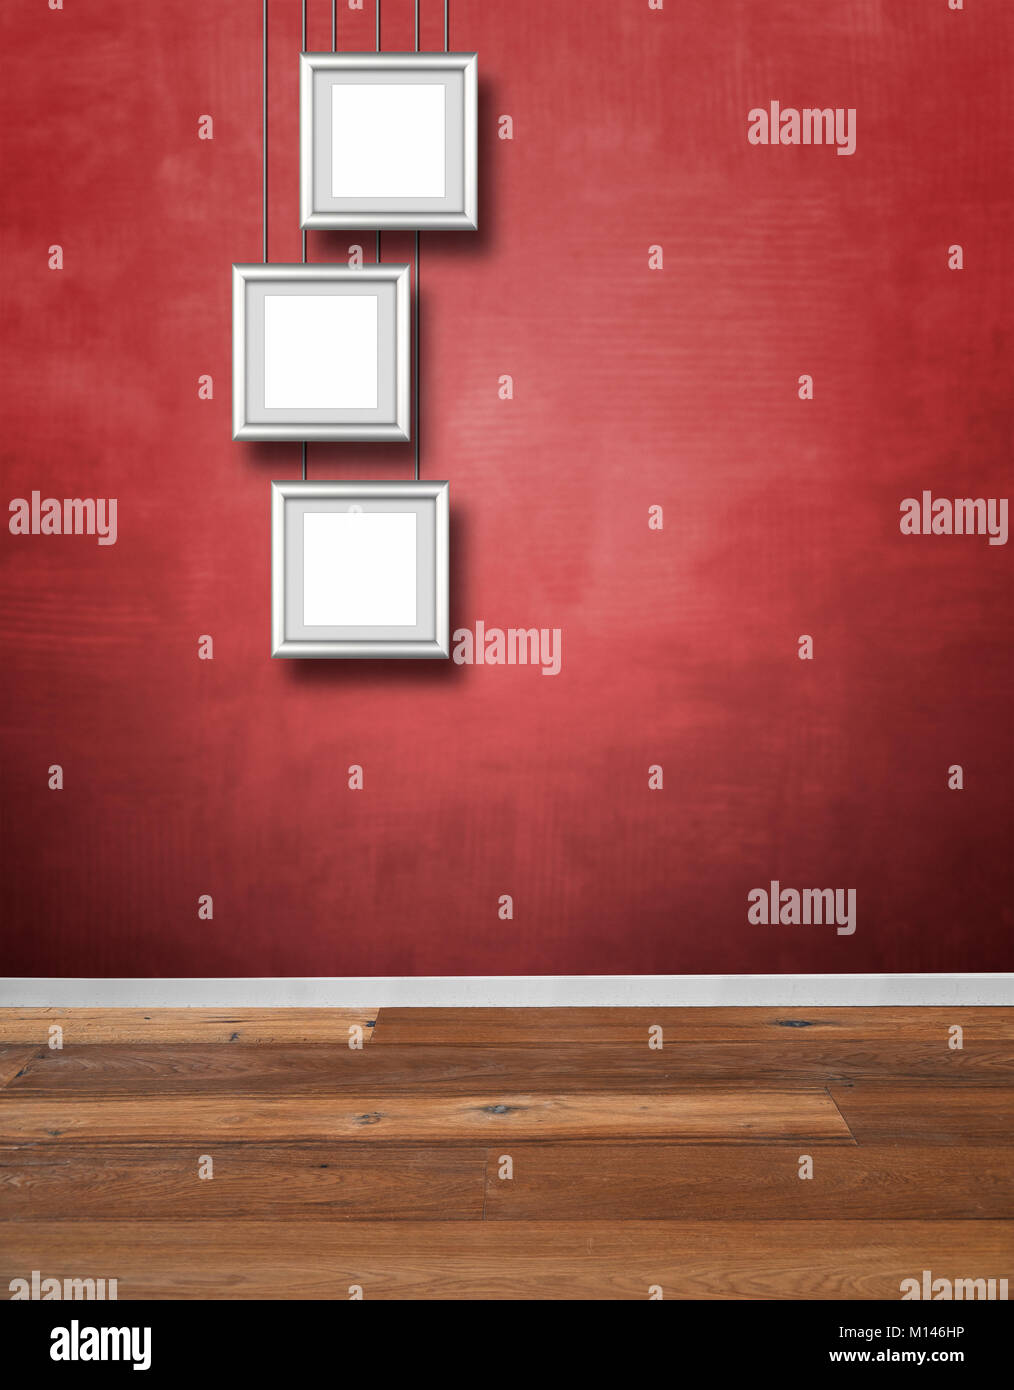 Red textured wall and Alu frames hanging Stock Photo